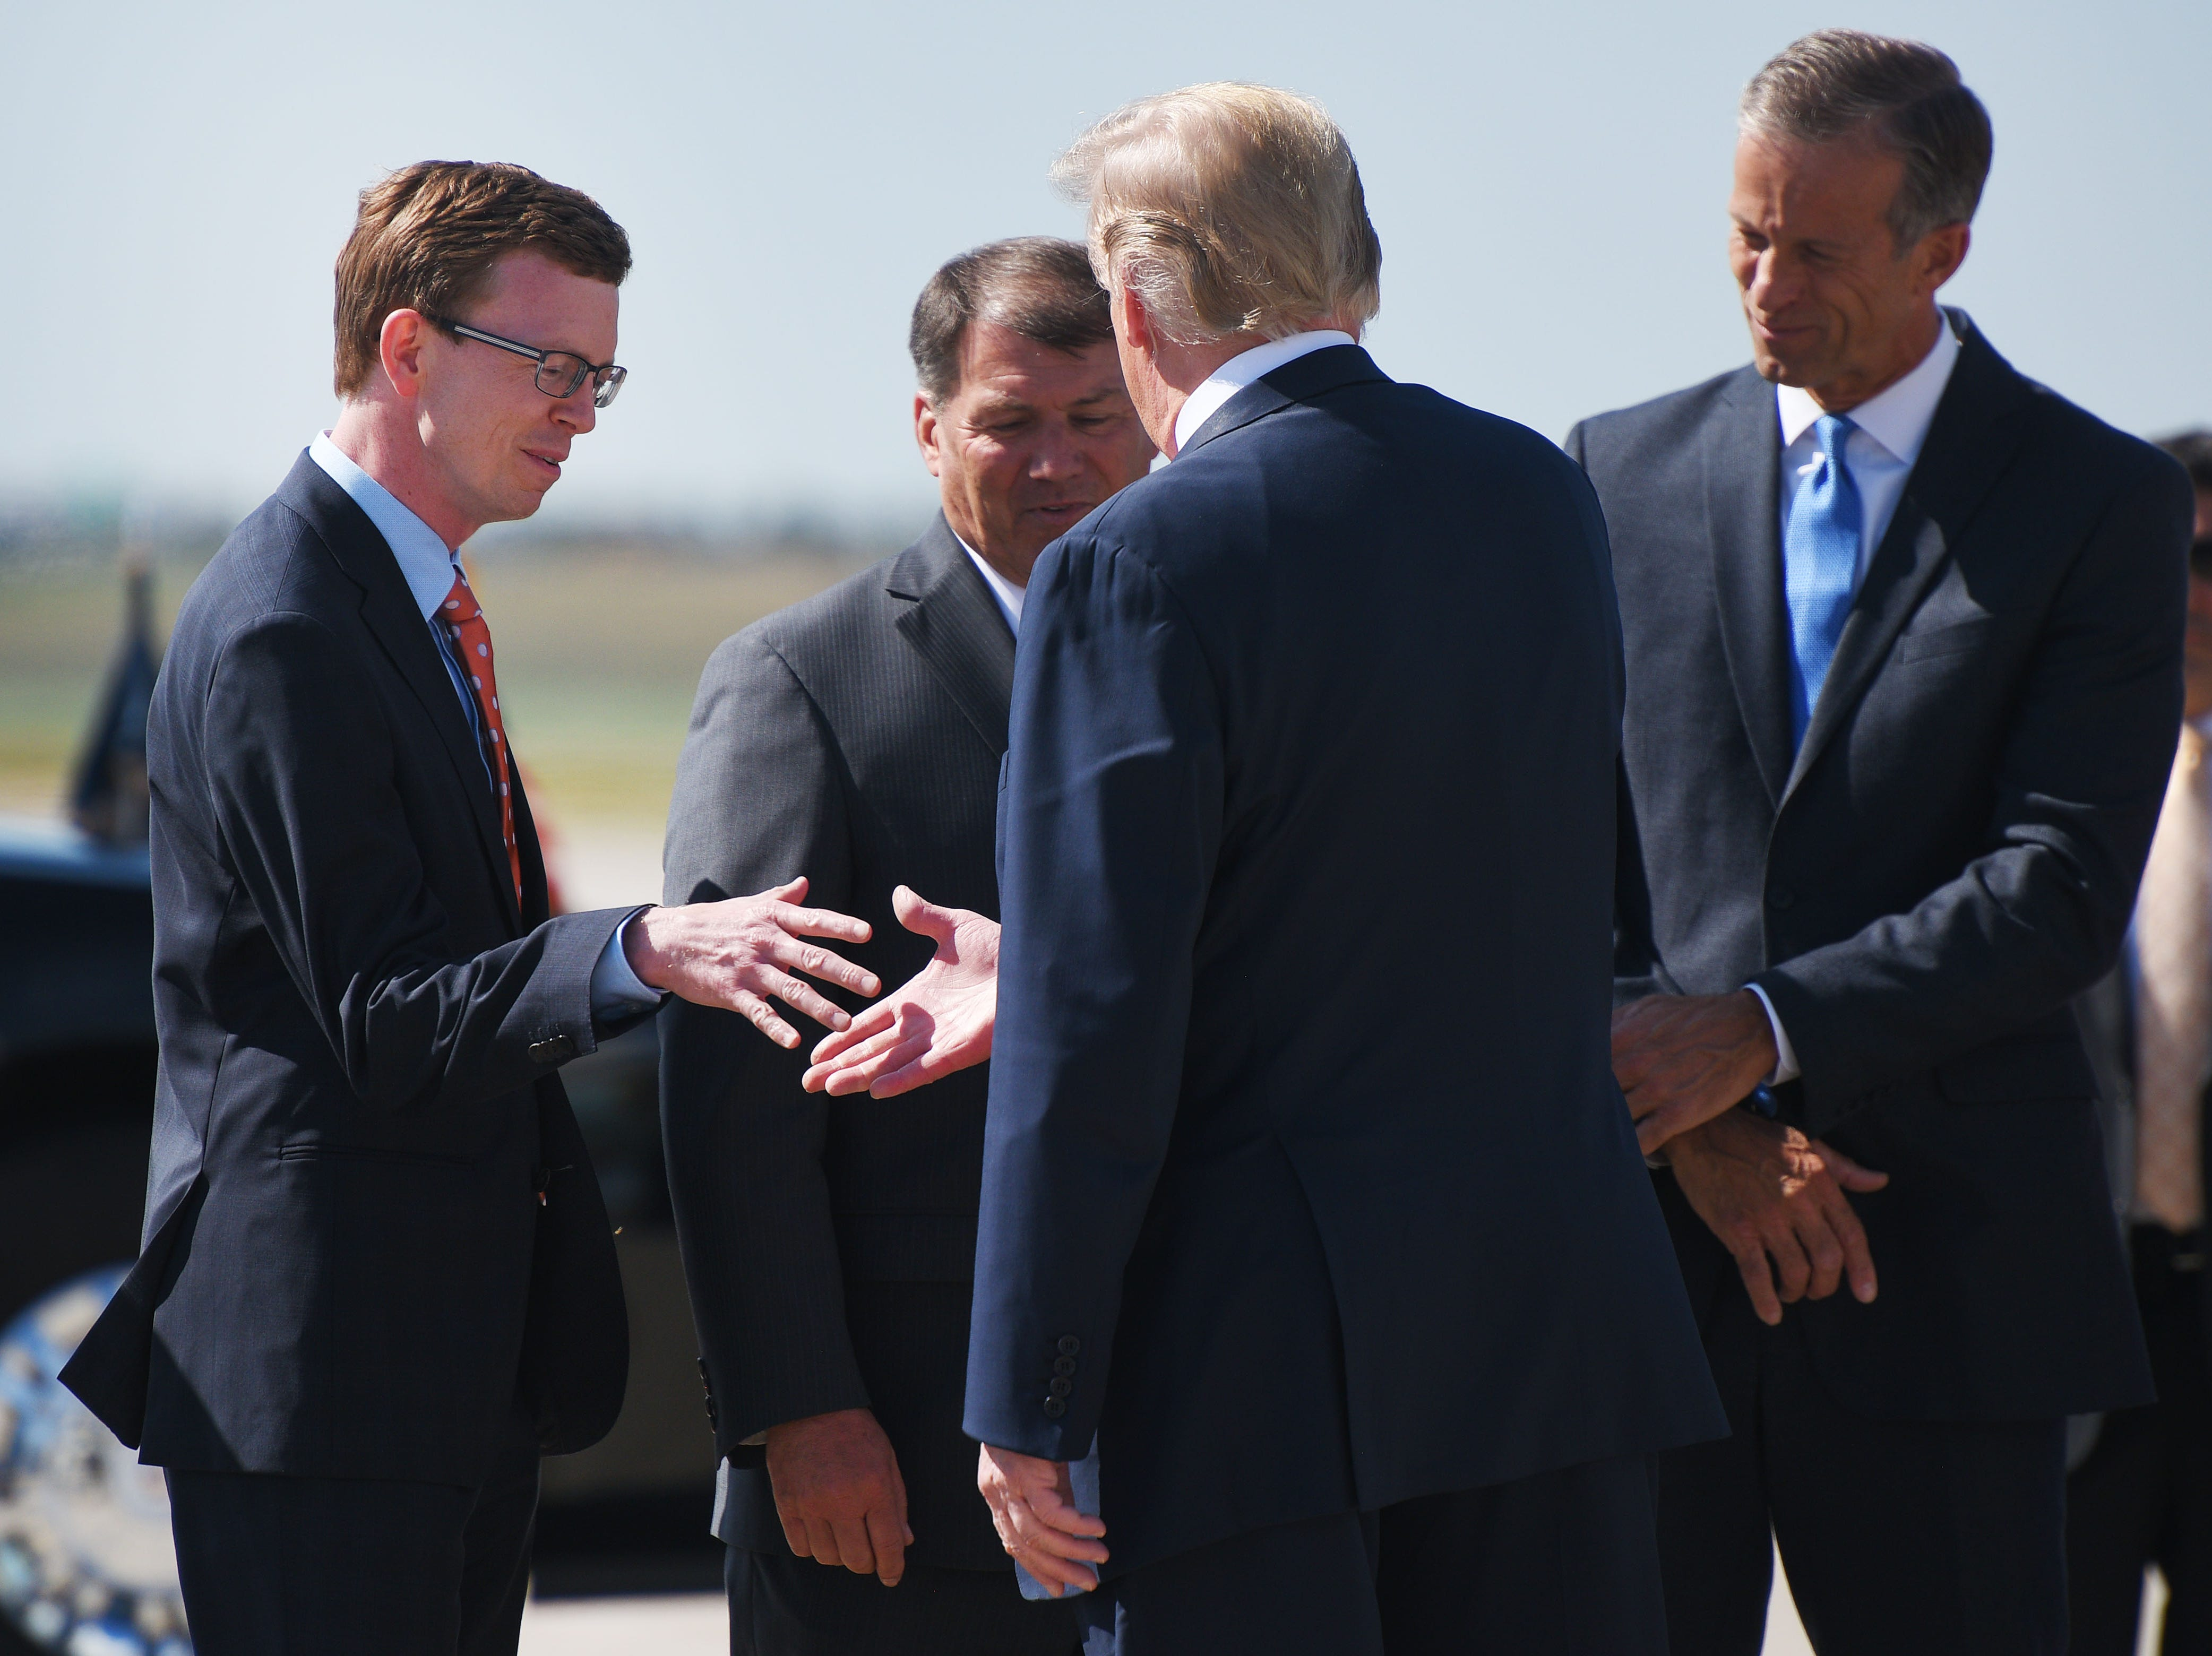 President Donald Trump shakes hands with Dusty Johnson after he lands Friday, Sept. 7, at South Dakota Air National Guard in Sioux Falls.